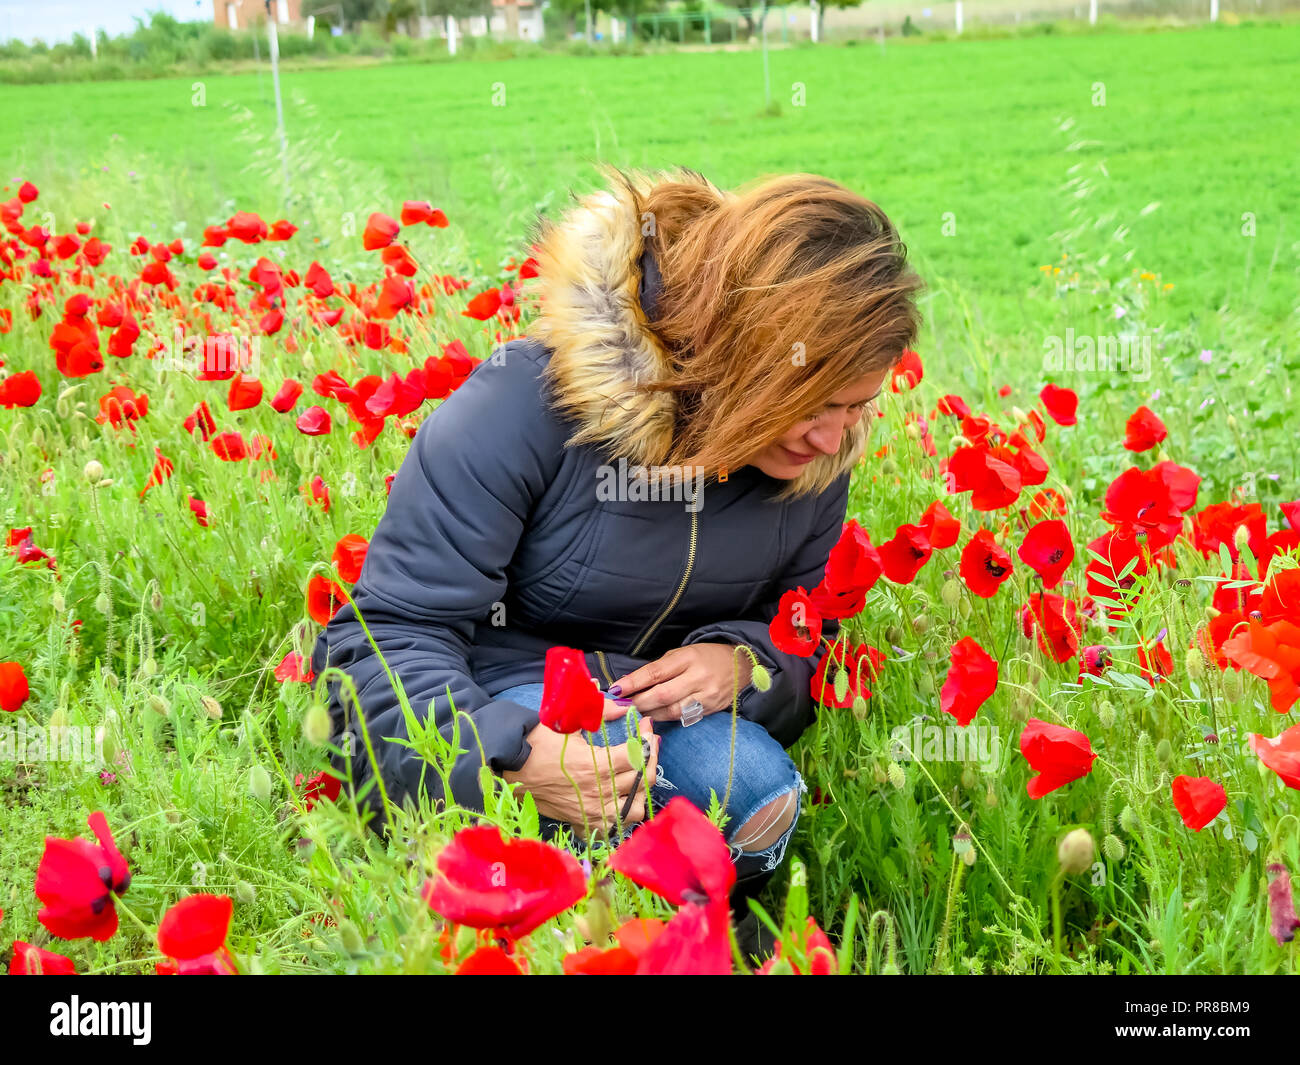 blonde hair woman wearing black coat in autumn smelling a red poppy flower in a field in Toldeo, Spain - Stock Image